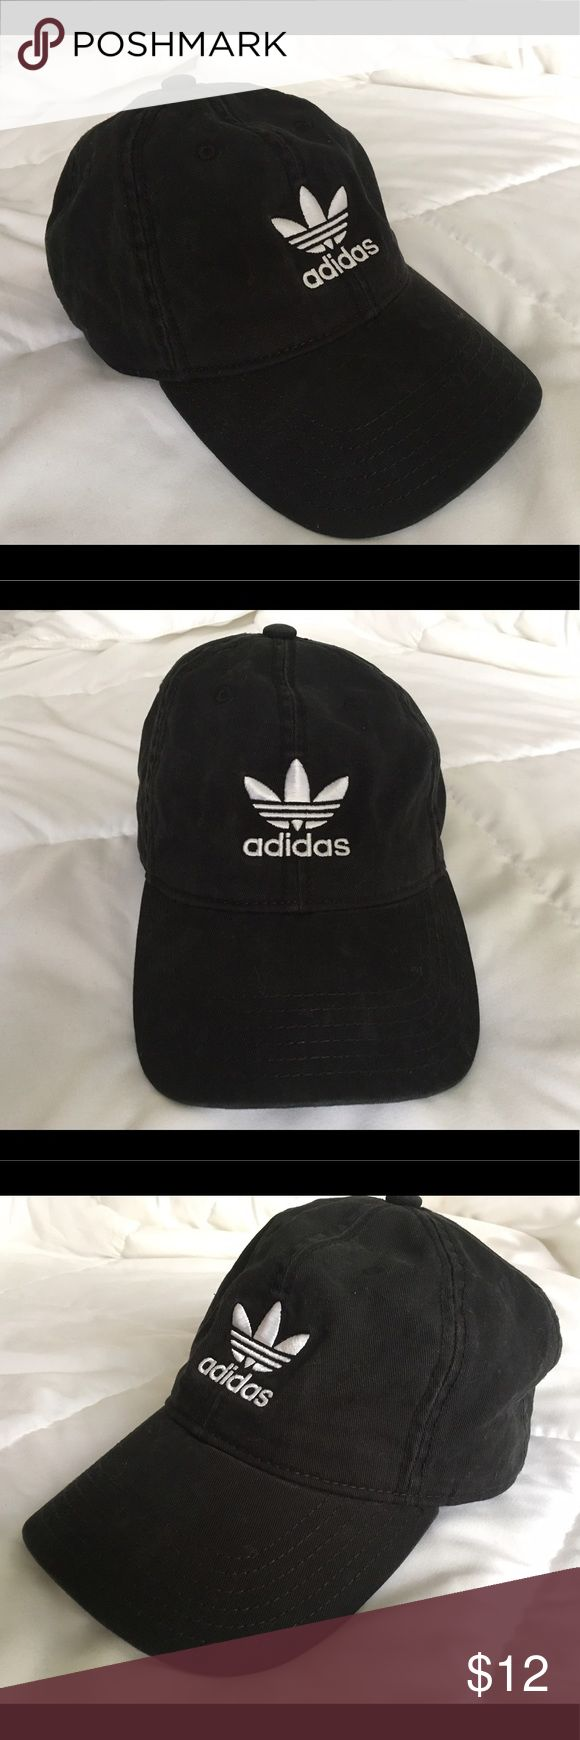 Adidas Baseball Cap Worn once. In great condition. Adjustable back strap. Color is a faded black with white. Super cute for summer! ✨bundle and save✨ adidas Accessories Hats